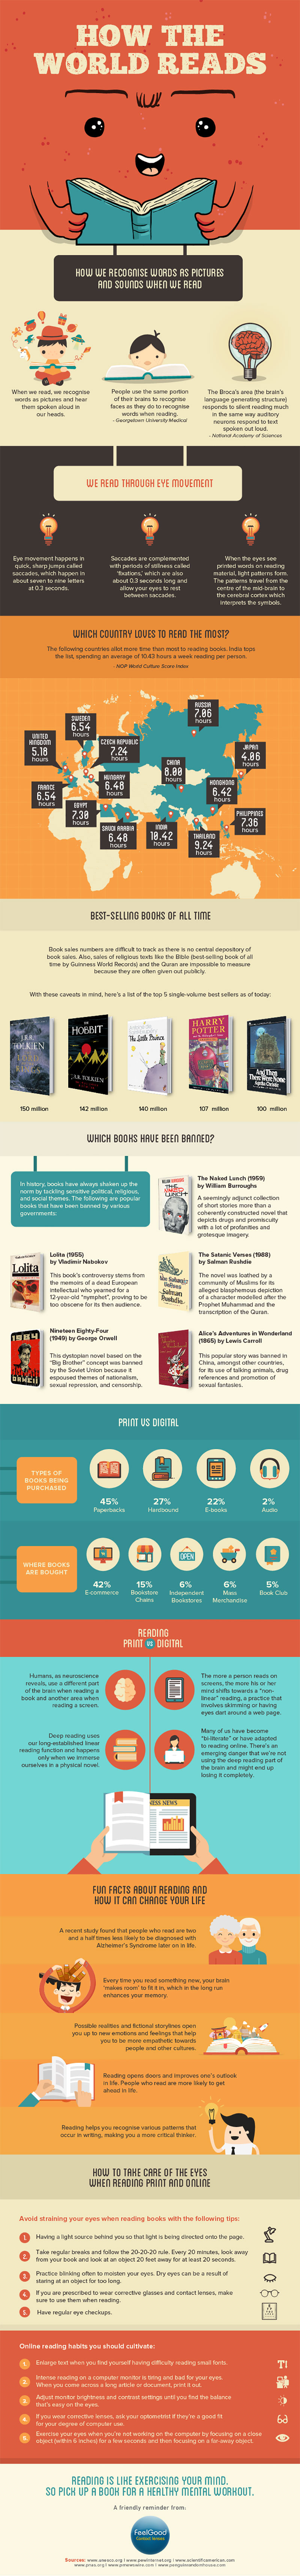 Surprising Facts On Reading And Books